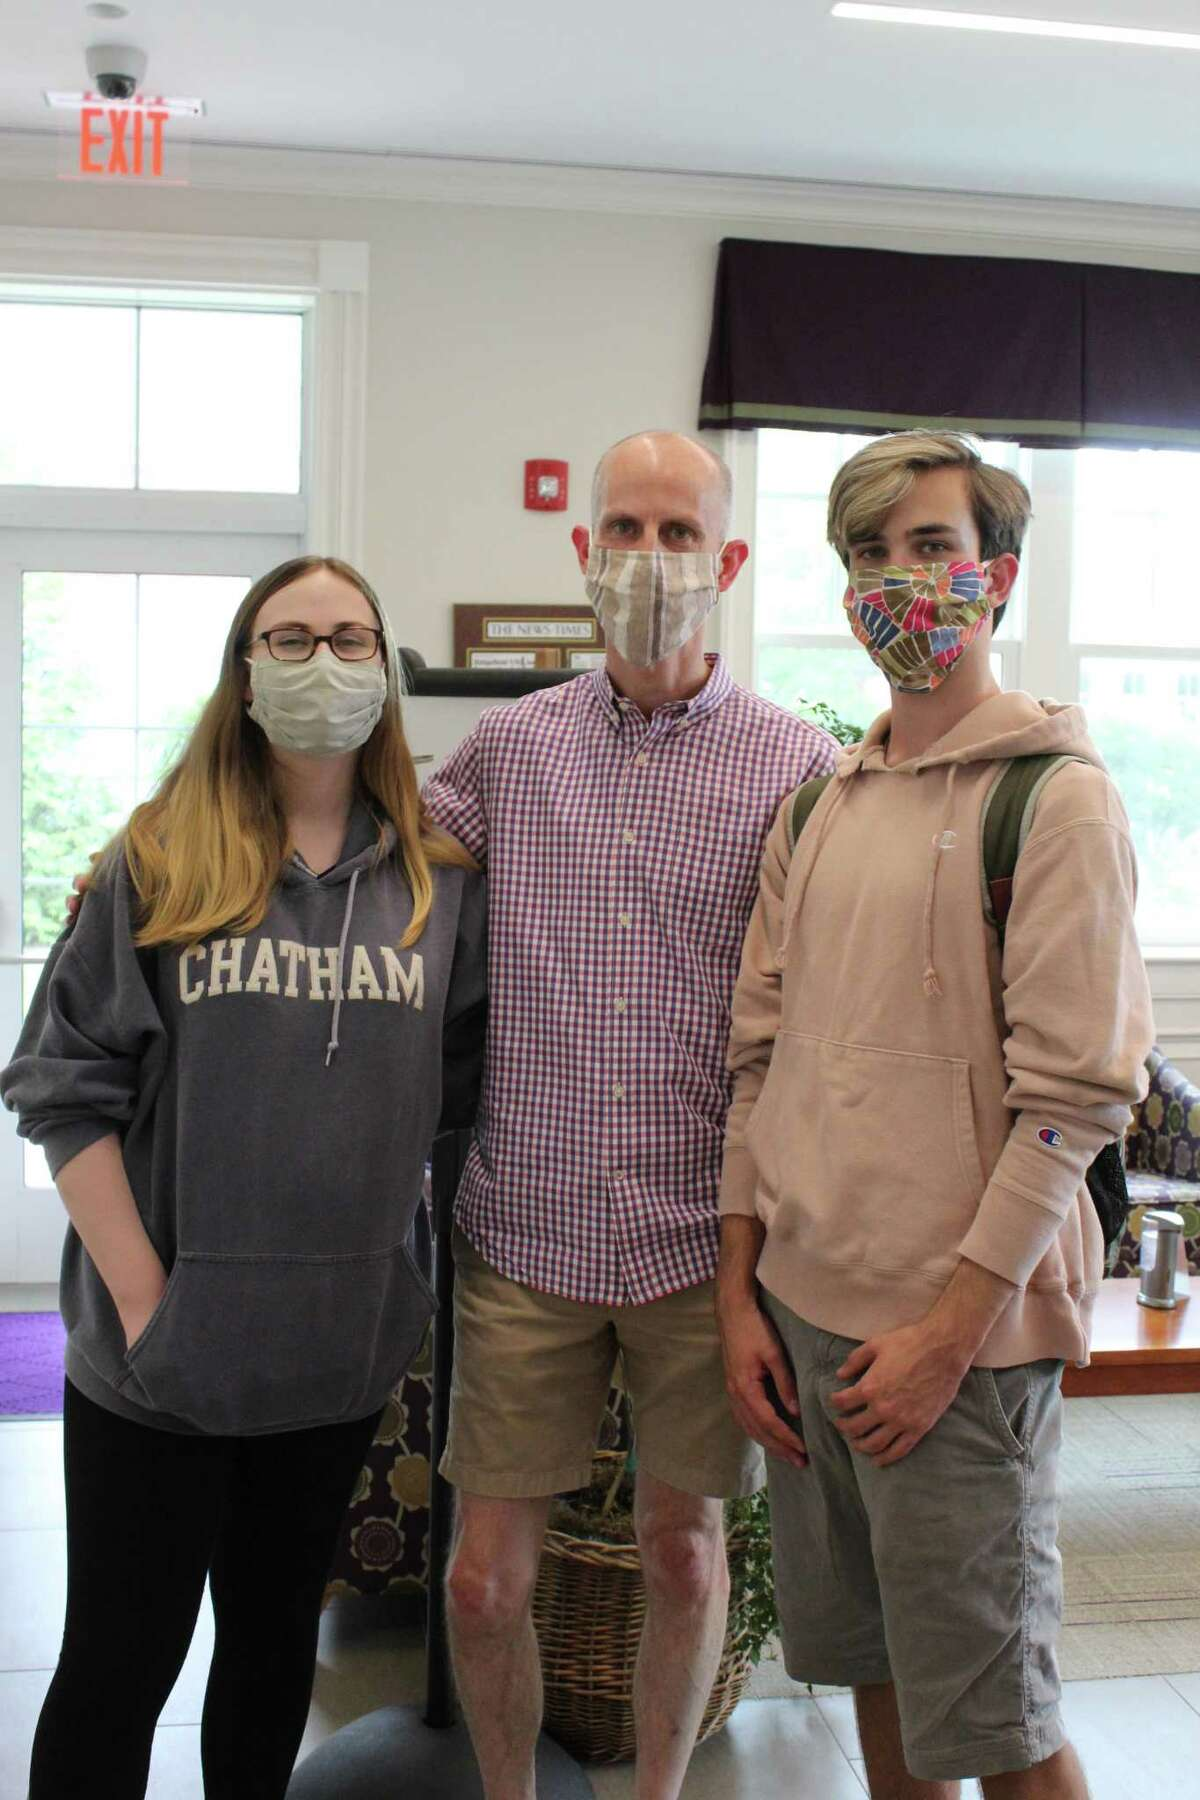 RVNAhealth flu season opened to a full line-up of appointments Sept. 9, including the Fisher-Sleigh Family who came in force with 5 family members, including Kiera, Brian and Conor. RVNAhealth offers vaccines for all those six months and older.